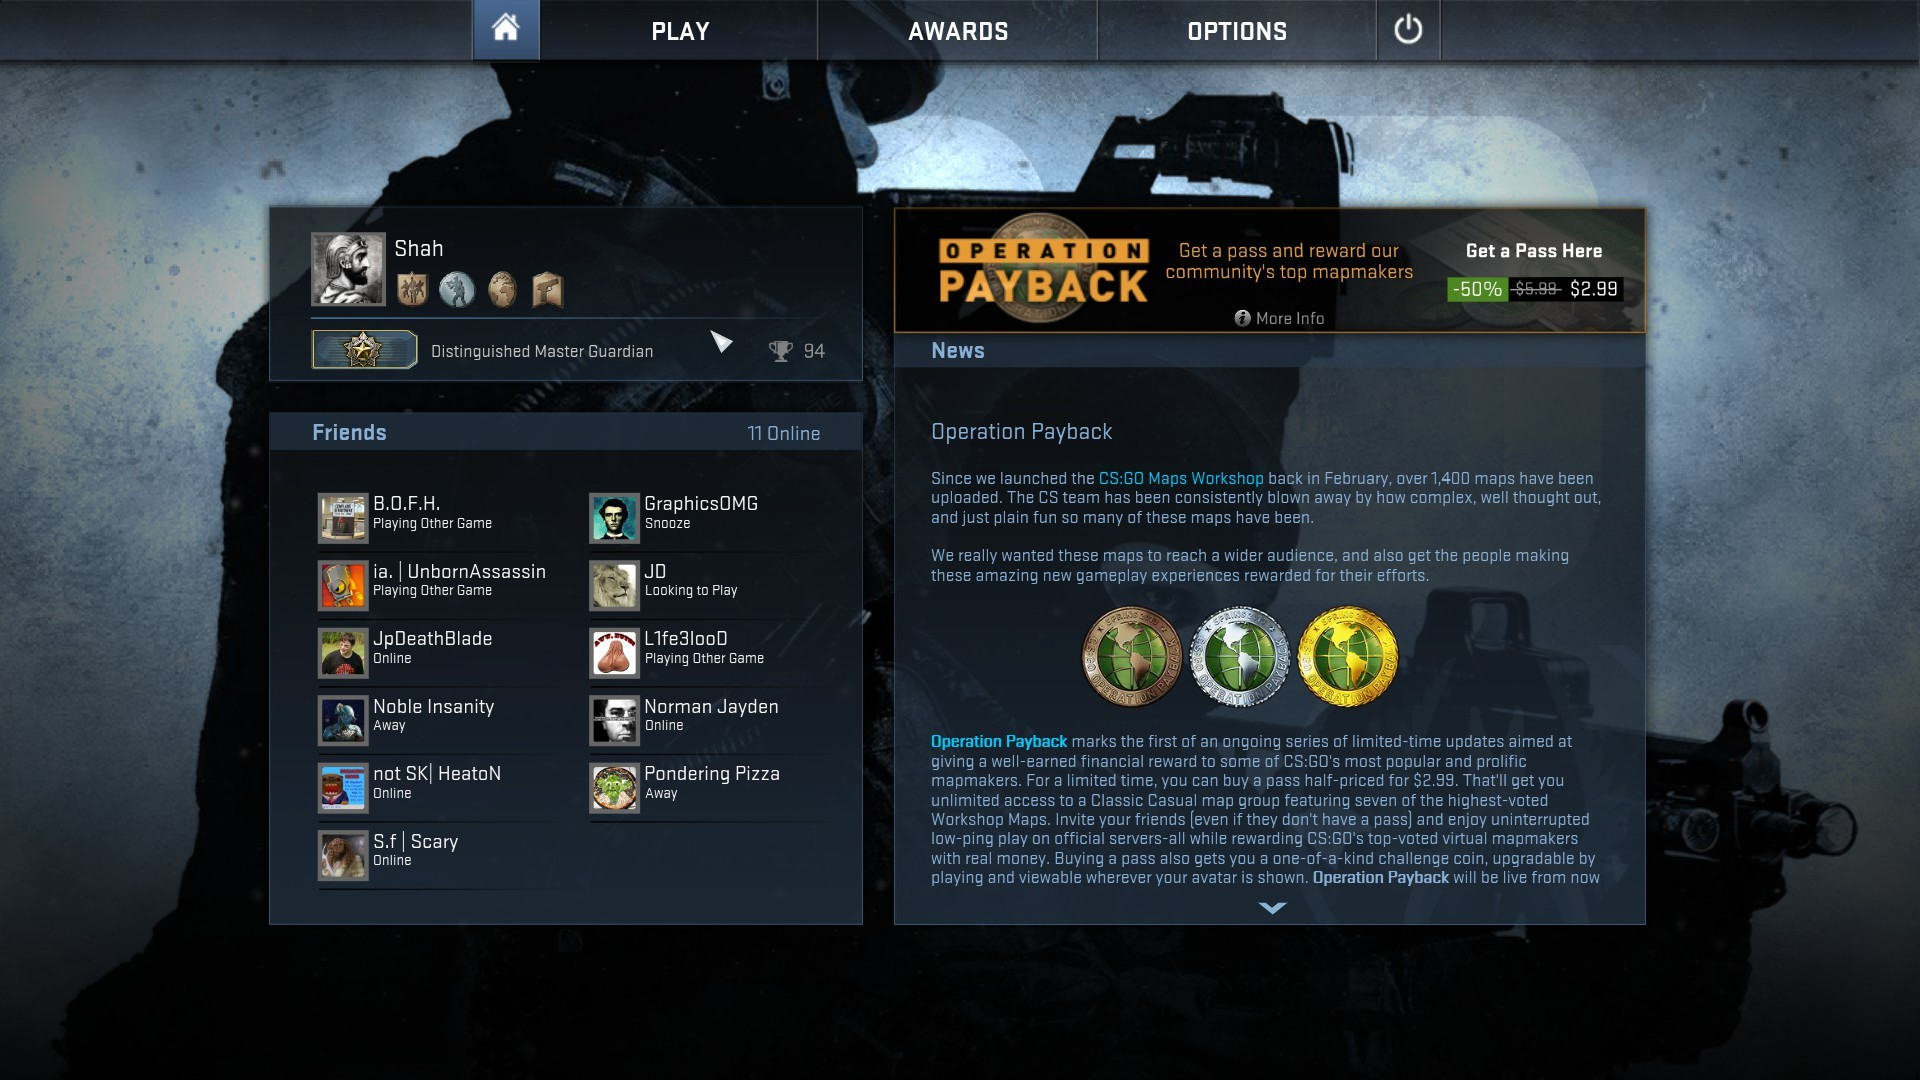 This is my first Counter-Strike and I finally reached the Distinguished  Master Guardian Rank. Thanks for all the tips from this subreddit, it  really helps.